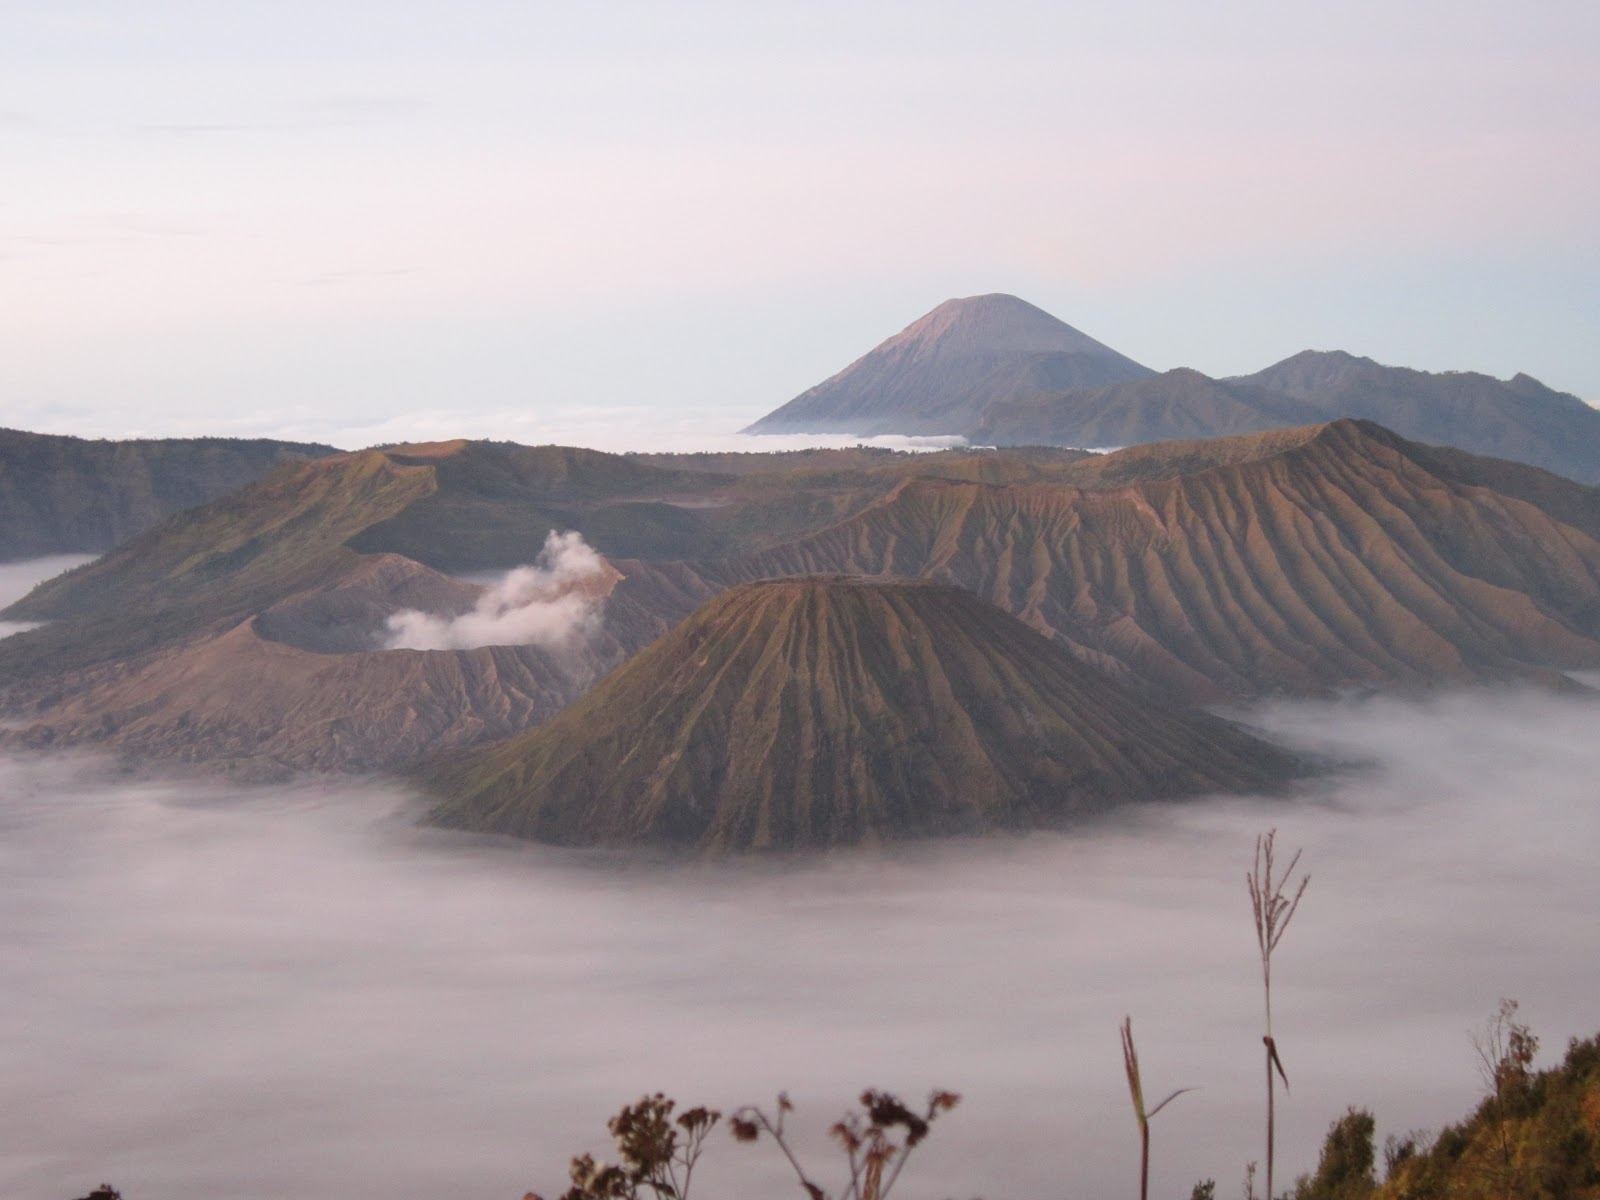 Mount Bromo in Probolinggo